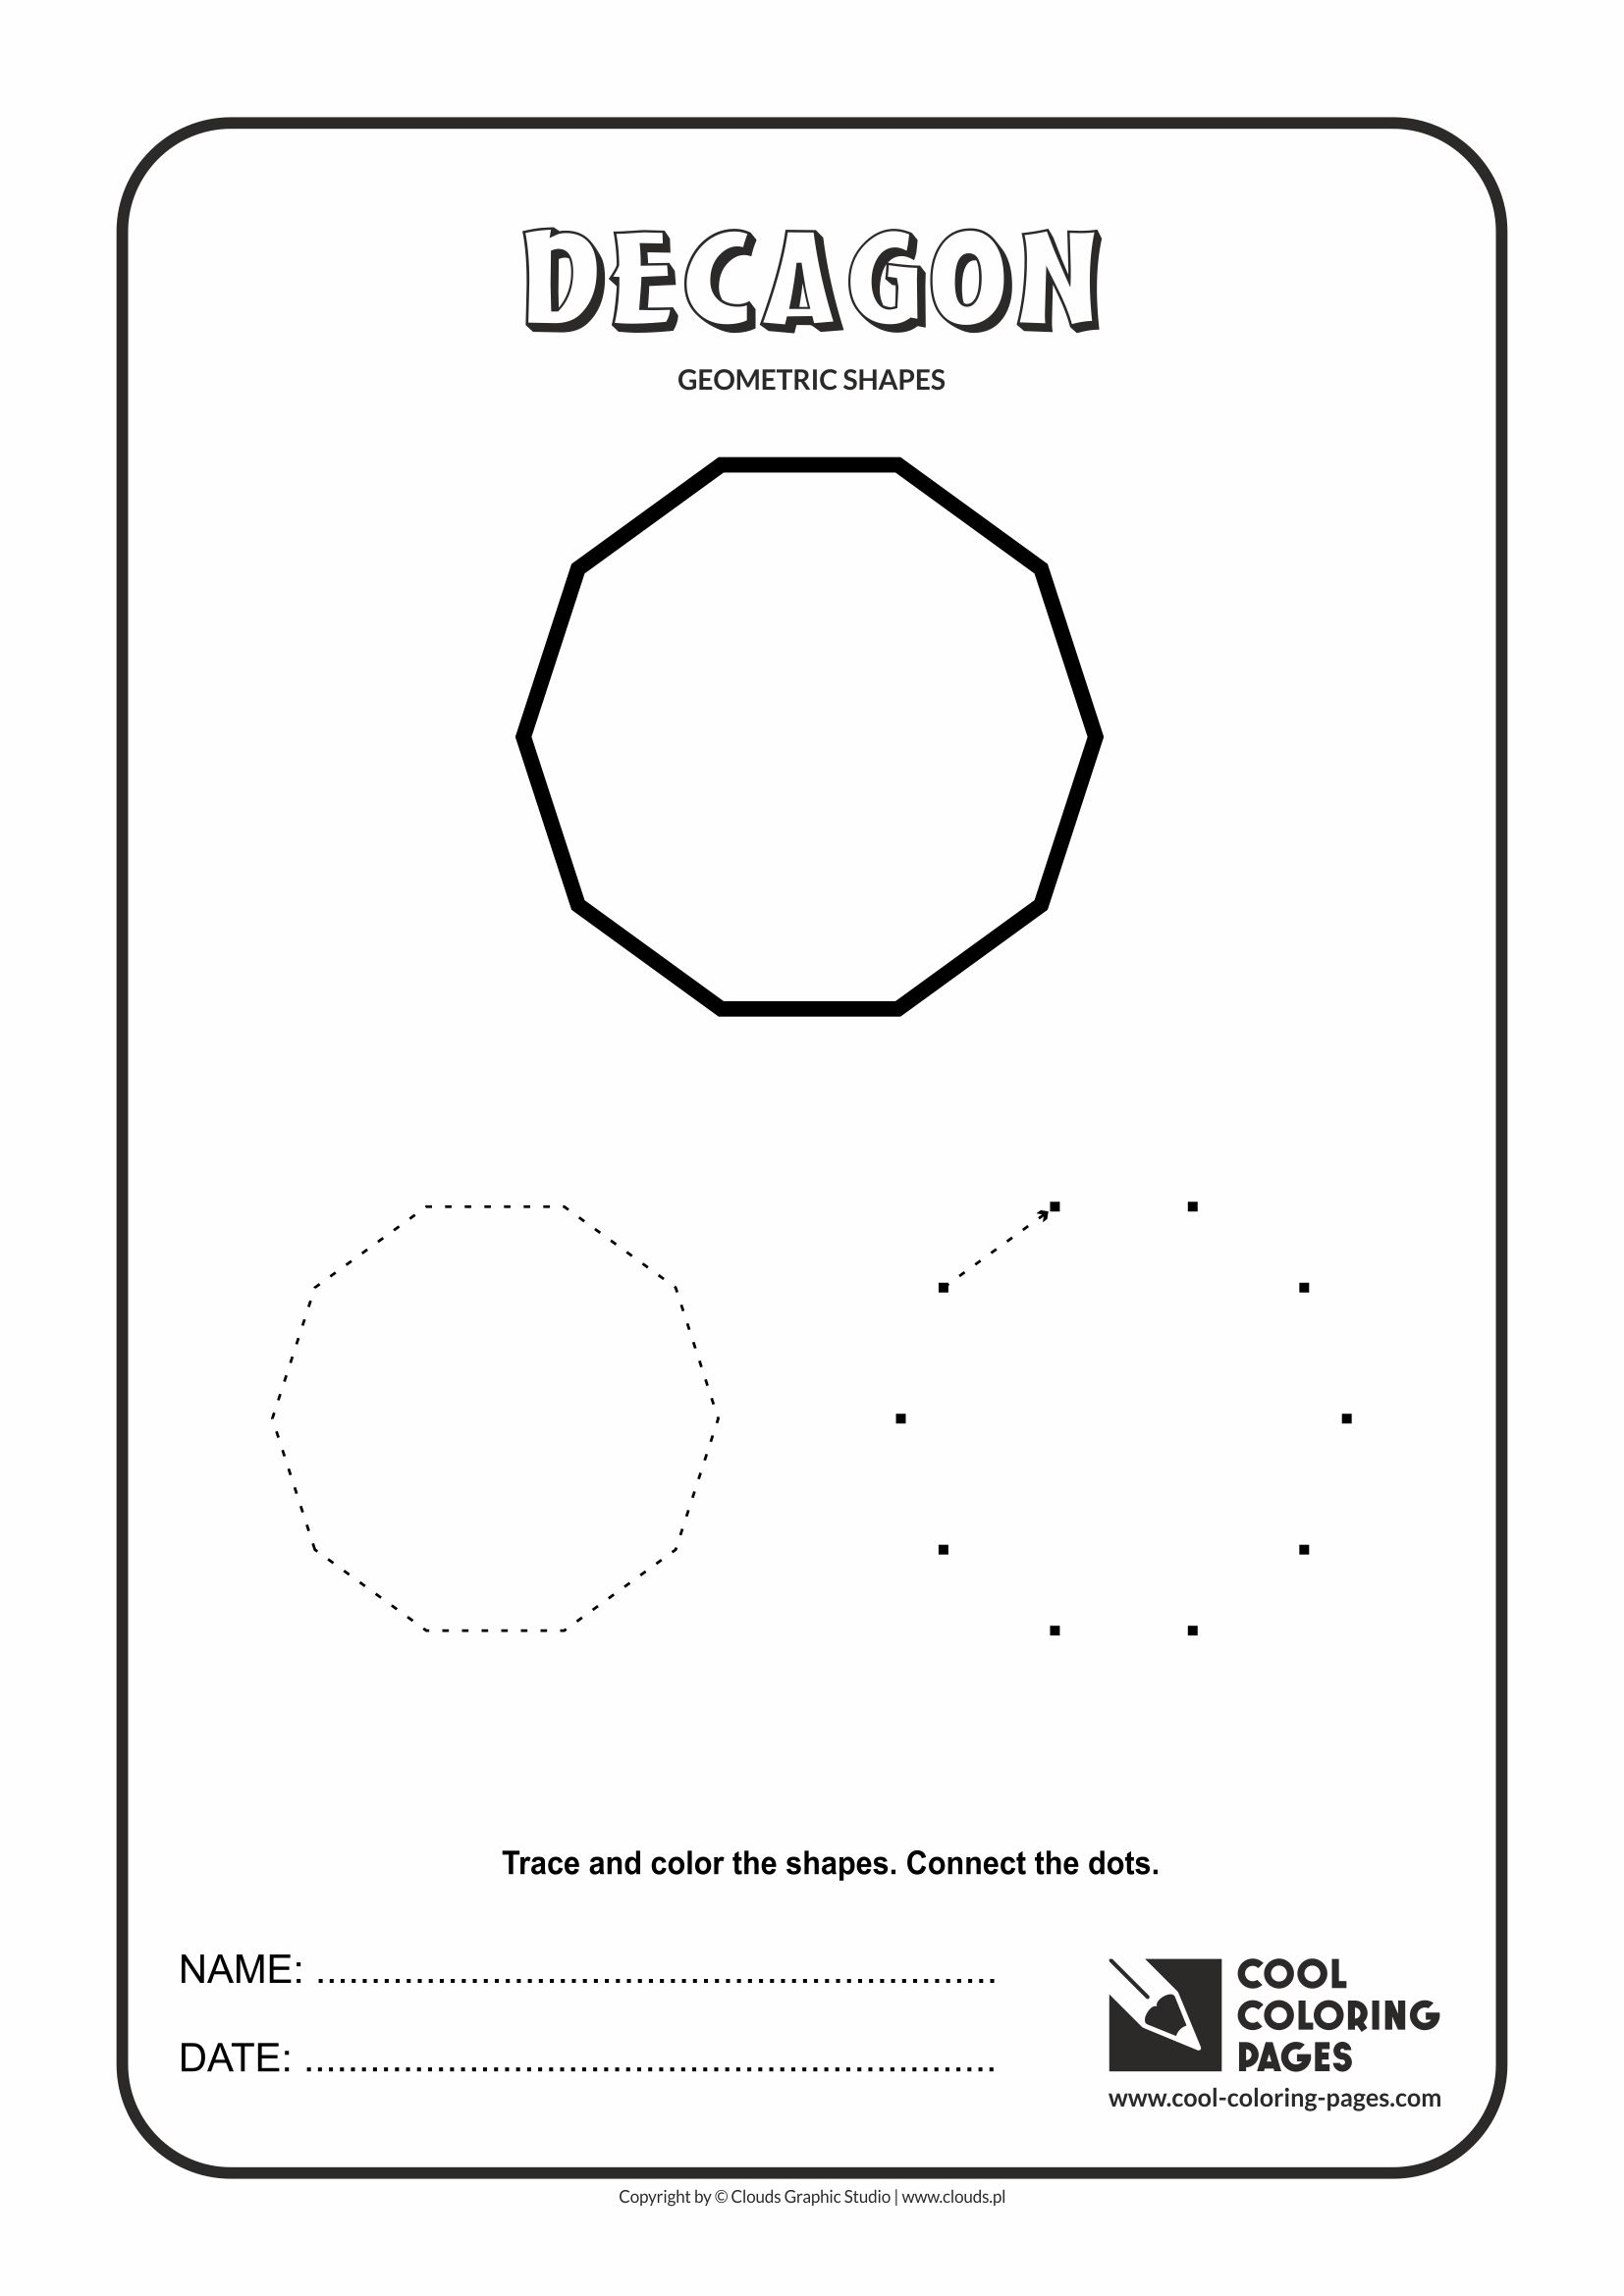 Coloring pages shapes - Cool Coloring Pages Geometric Shapes Decagon